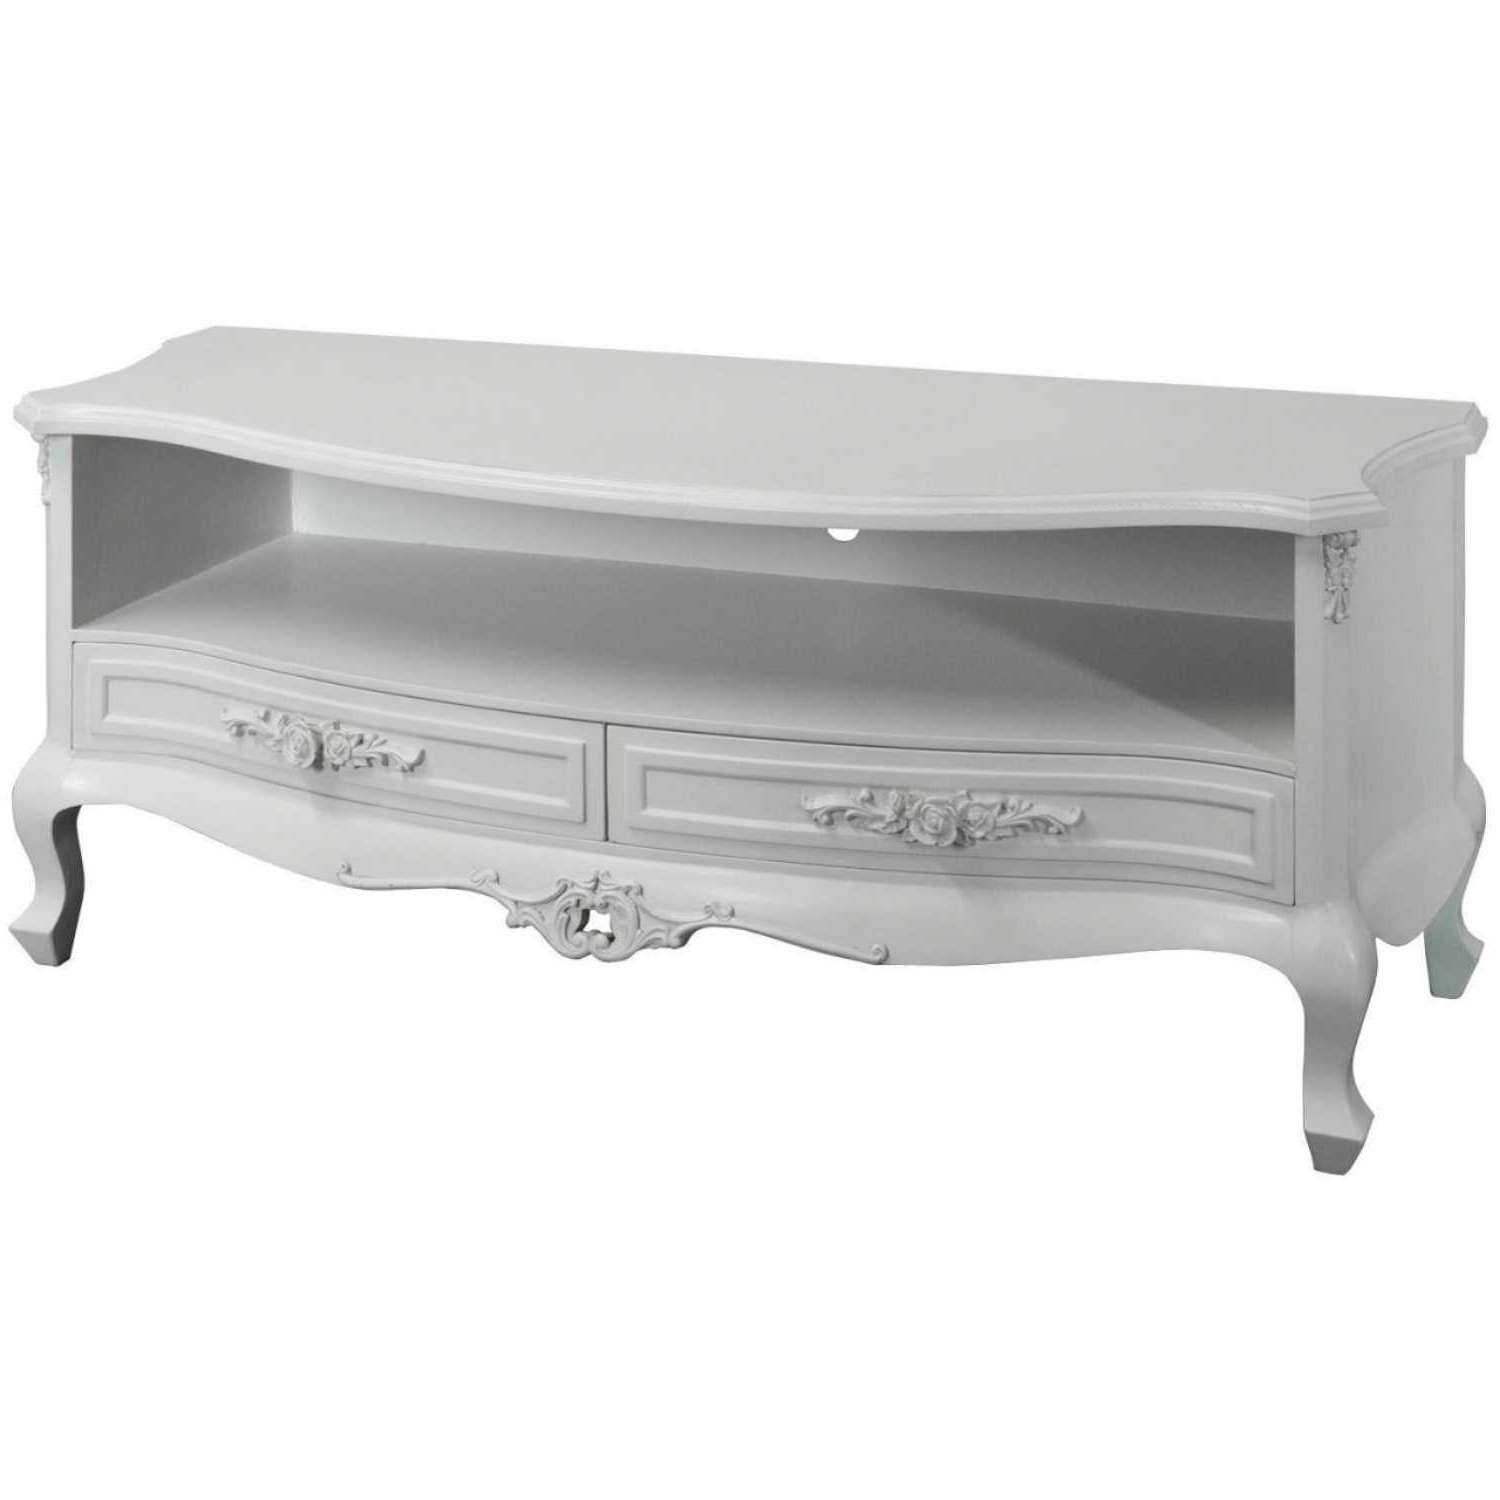 Rose Shabby Chic White Painted Low Widescreen Tv Stand Cabinet Regarding Shabby Chic Tv Cabinets (View 10 of 20)